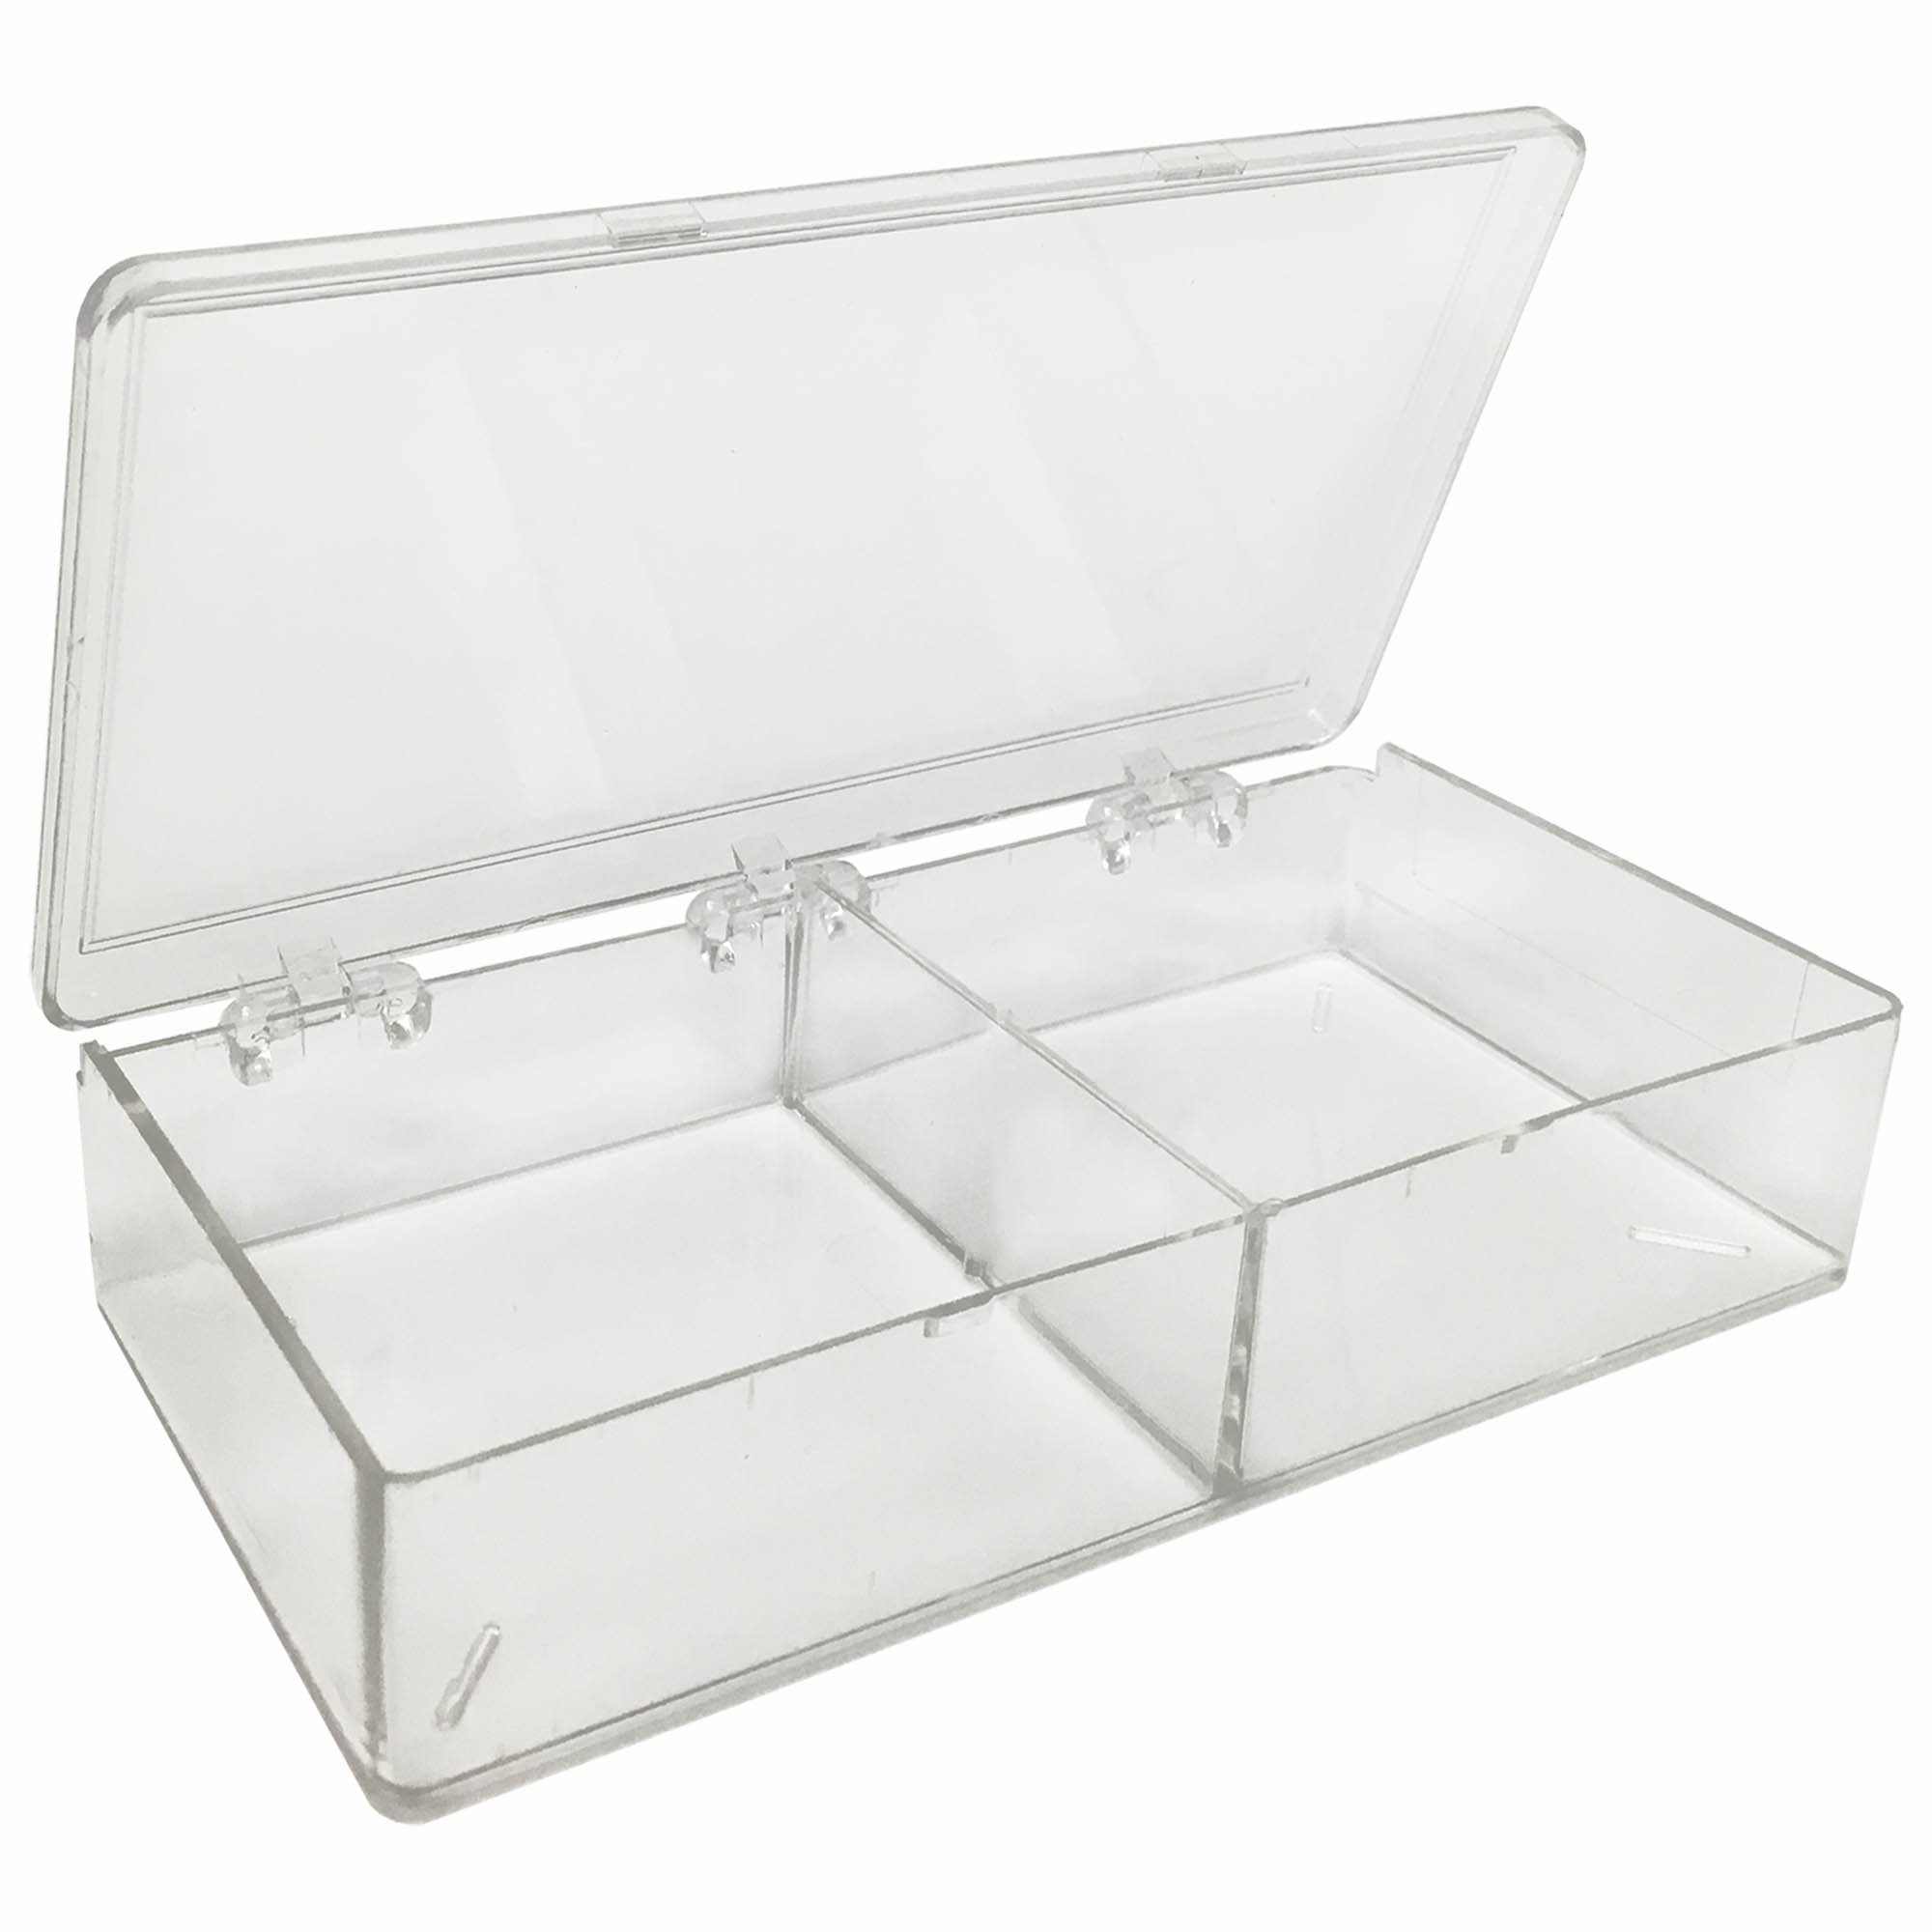 MultiBox Clear Western Blot Box - 2 Compartments 85 x 85 x 30mm Each (Case of 36)